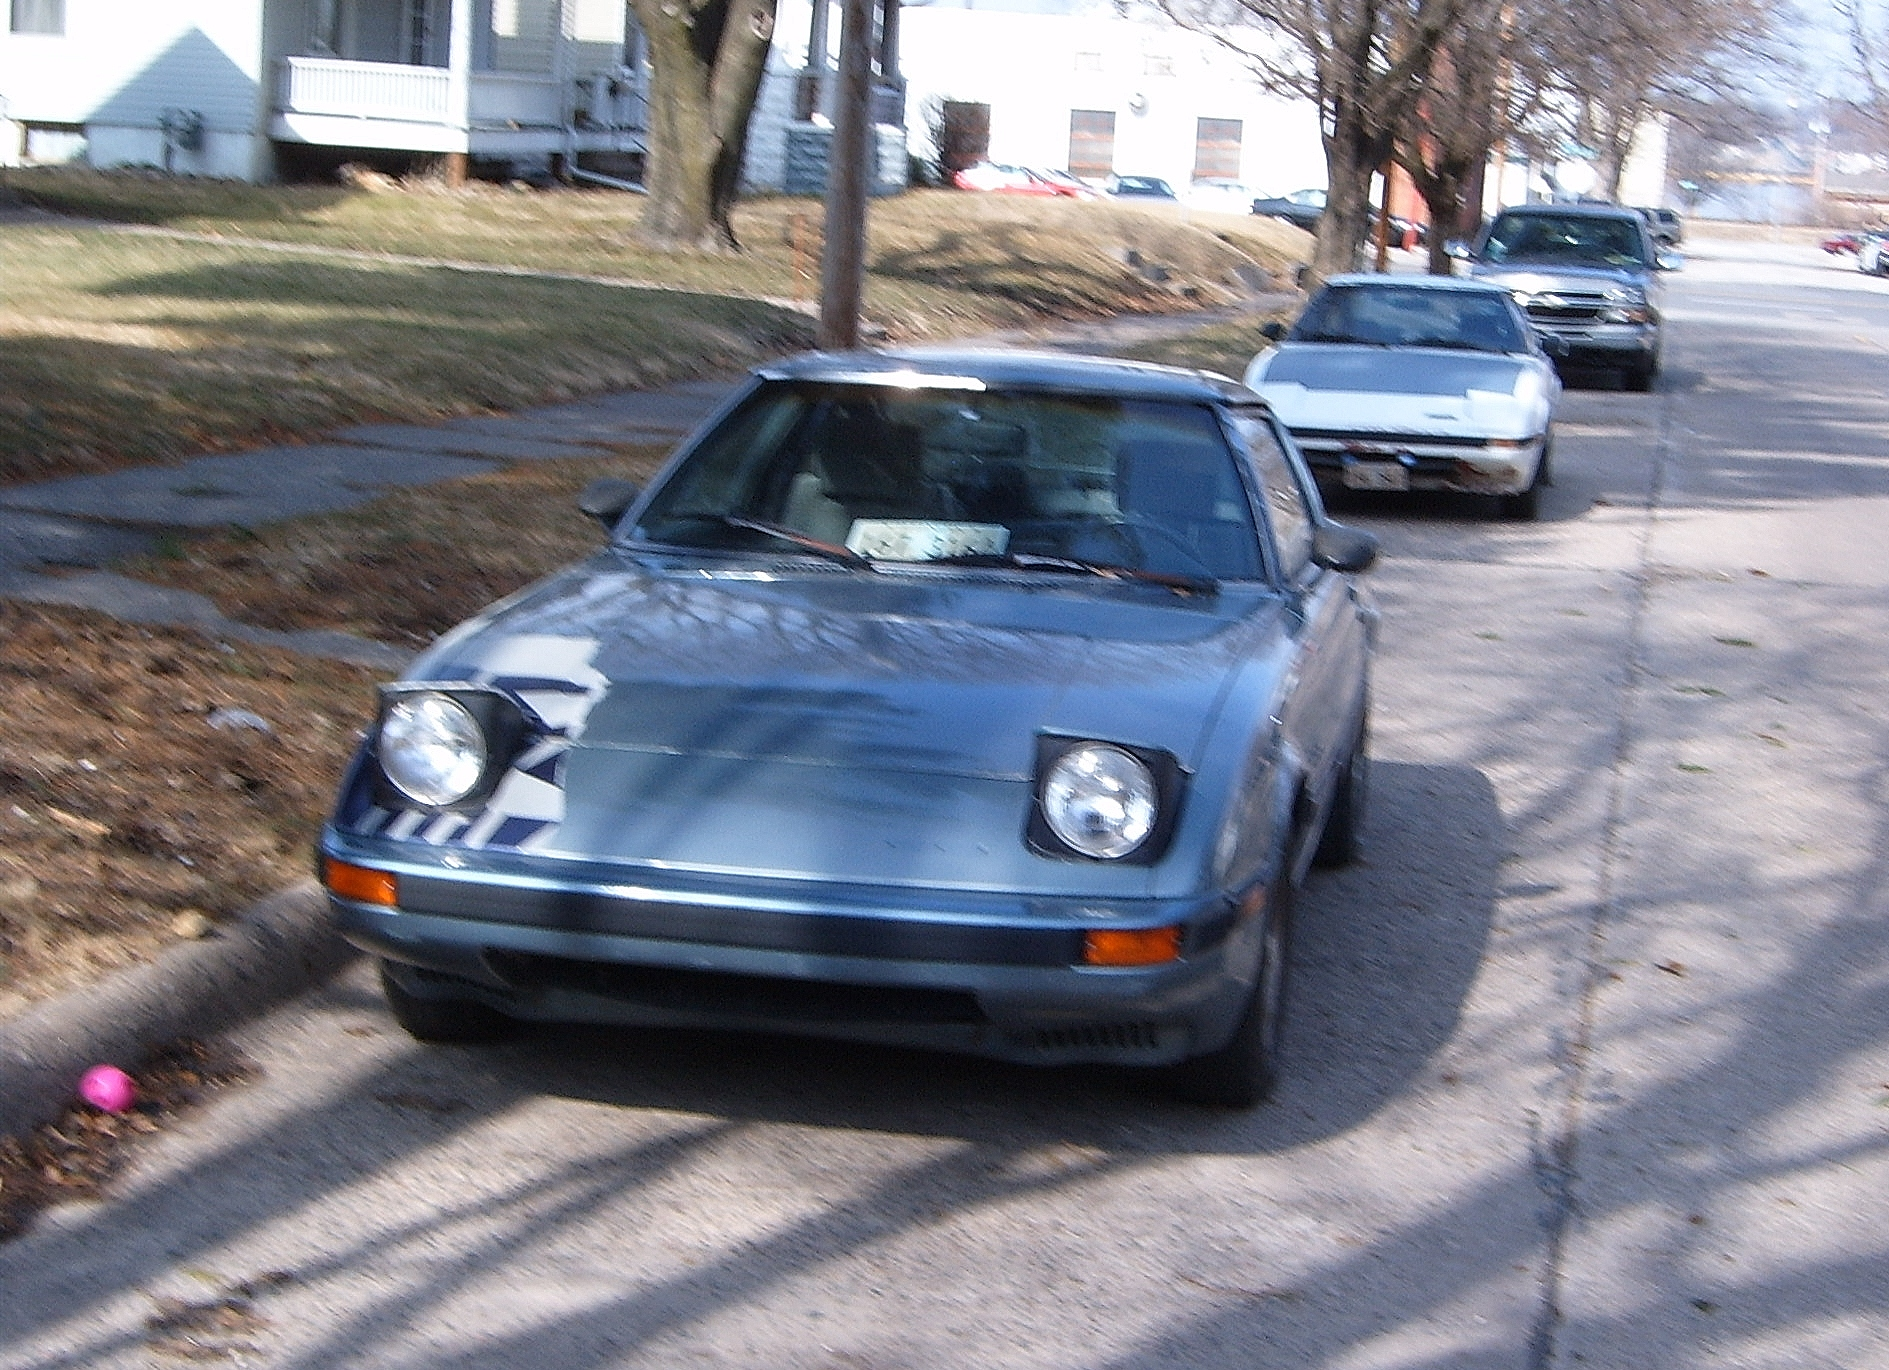 Curbside Classic 1983 Mazda Rx 7 Zinger 1986 Rx7 Wiring Diagram For Headlights I Spotted Two 7s On The Same Street Last Year But Never Got Around To Writing Them Up White One In Background Was A Lot More Bedraggled Than